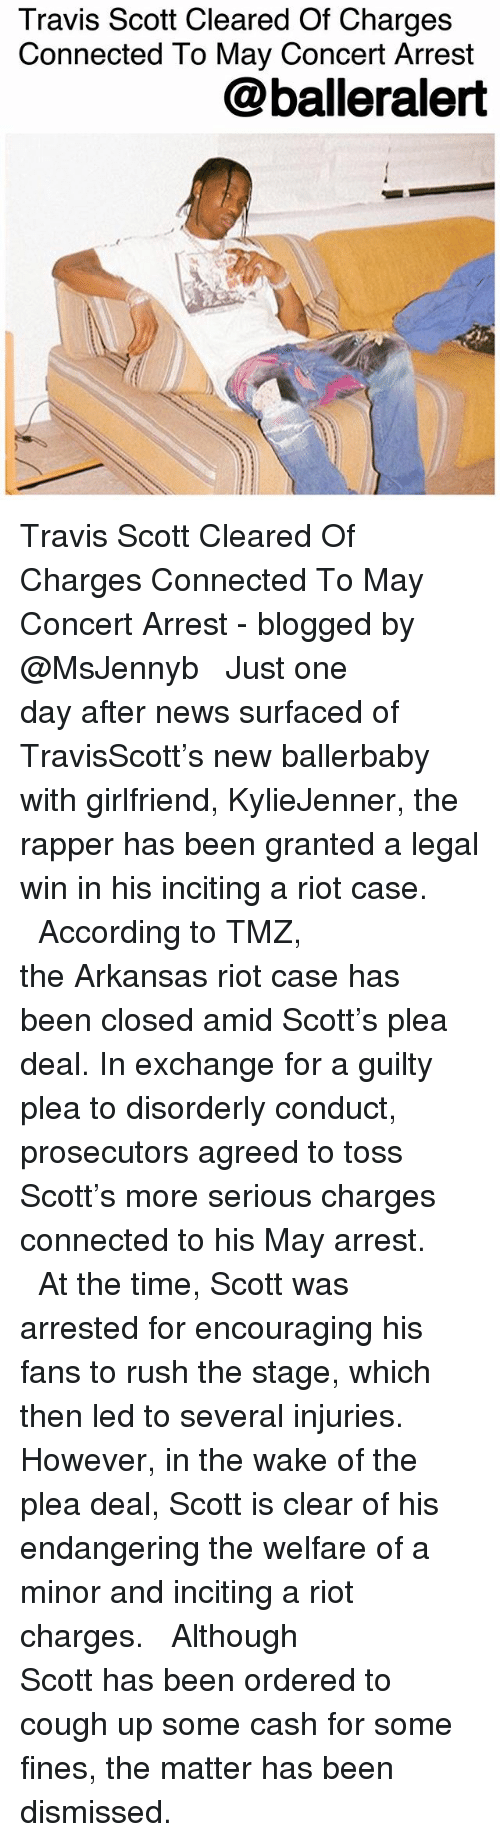 Memes, News, and Riot: Travis Scott Cleared Of Charges  Connected To May Concert Arrest  @balleralert Travis Scott Cleared Of Charges Connected To May Concert Arrest - blogged by @MsJennyb ⠀⠀⠀⠀⠀⠀⠀ ⠀⠀⠀⠀⠀⠀⠀ Just one day after news surfaced of TravisScott's new ballerbaby with girlfriend, KylieJenner, the rapper has been granted a legal win in his inciting a riot case. ⠀⠀⠀⠀⠀⠀⠀ ⠀⠀⠀⠀⠀⠀⠀ According to TMZ, the Arkansas riot case has been closed amid Scott's plea deal. In exchange for a guilty plea to disorderly conduct, prosecutors agreed to toss Scott's more serious charges connected to his May arrest. ⠀⠀⠀⠀⠀⠀⠀ ⠀⠀⠀⠀⠀⠀⠀ At the time, Scott was arrested for encouraging his fans to rush the stage, which then led to several injuries. However, in the wake of the plea deal, Scott is clear of his endangering the welfare of a minor and inciting a riot charges. ⠀⠀⠀⠀⠀⠀⠀ ⠀⠀⠀⠀⠀⠀⠀ Although Scott has been ordered to cough up some cash for some fines, the matter has been dismissed.